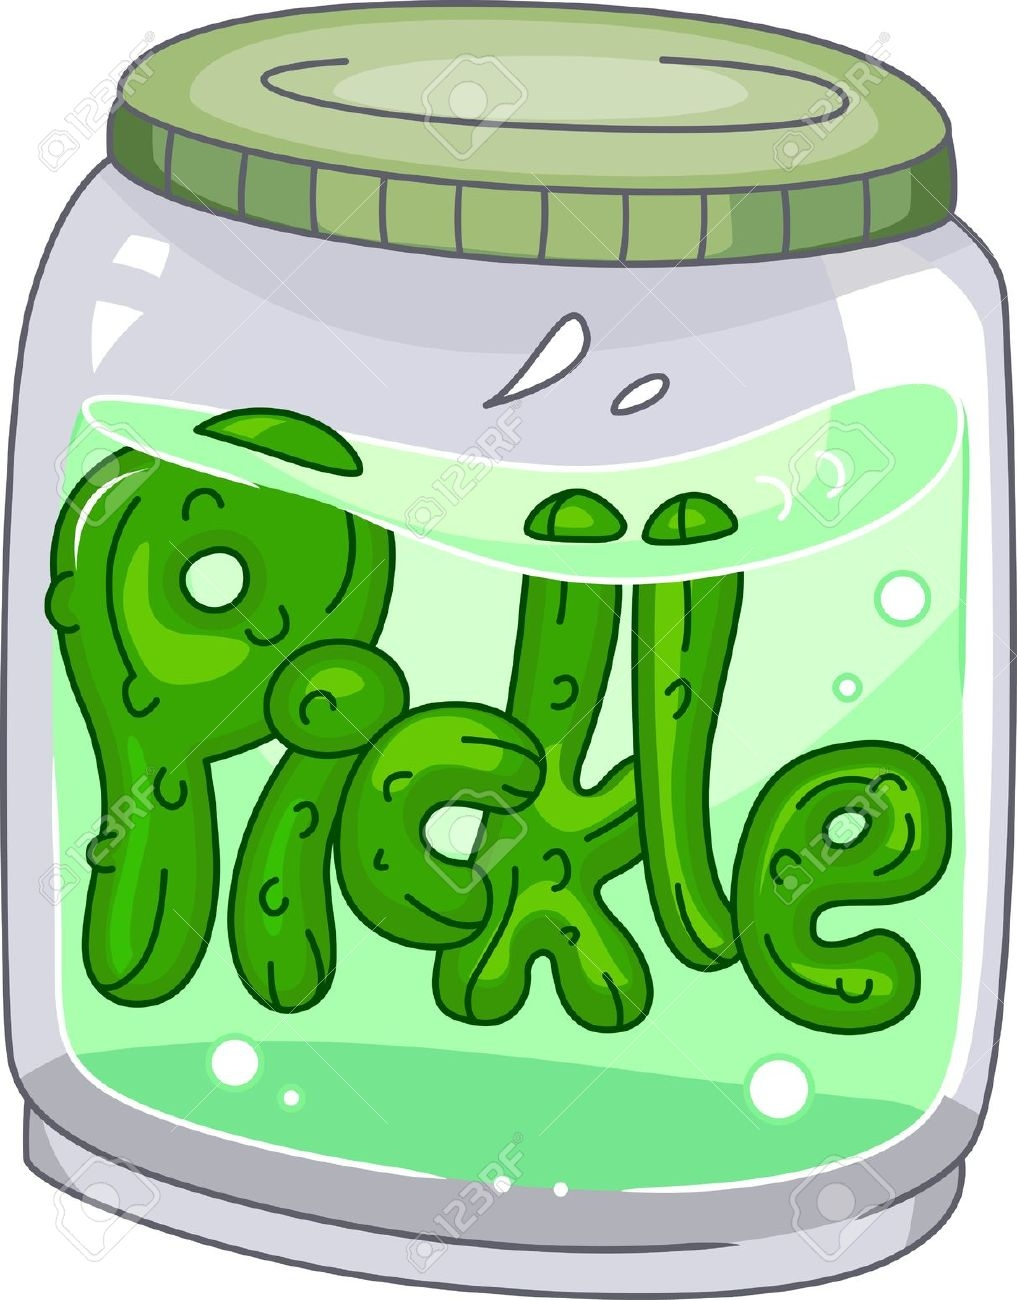 Pickle clipart animated Dill com Clipart Animated Pickle